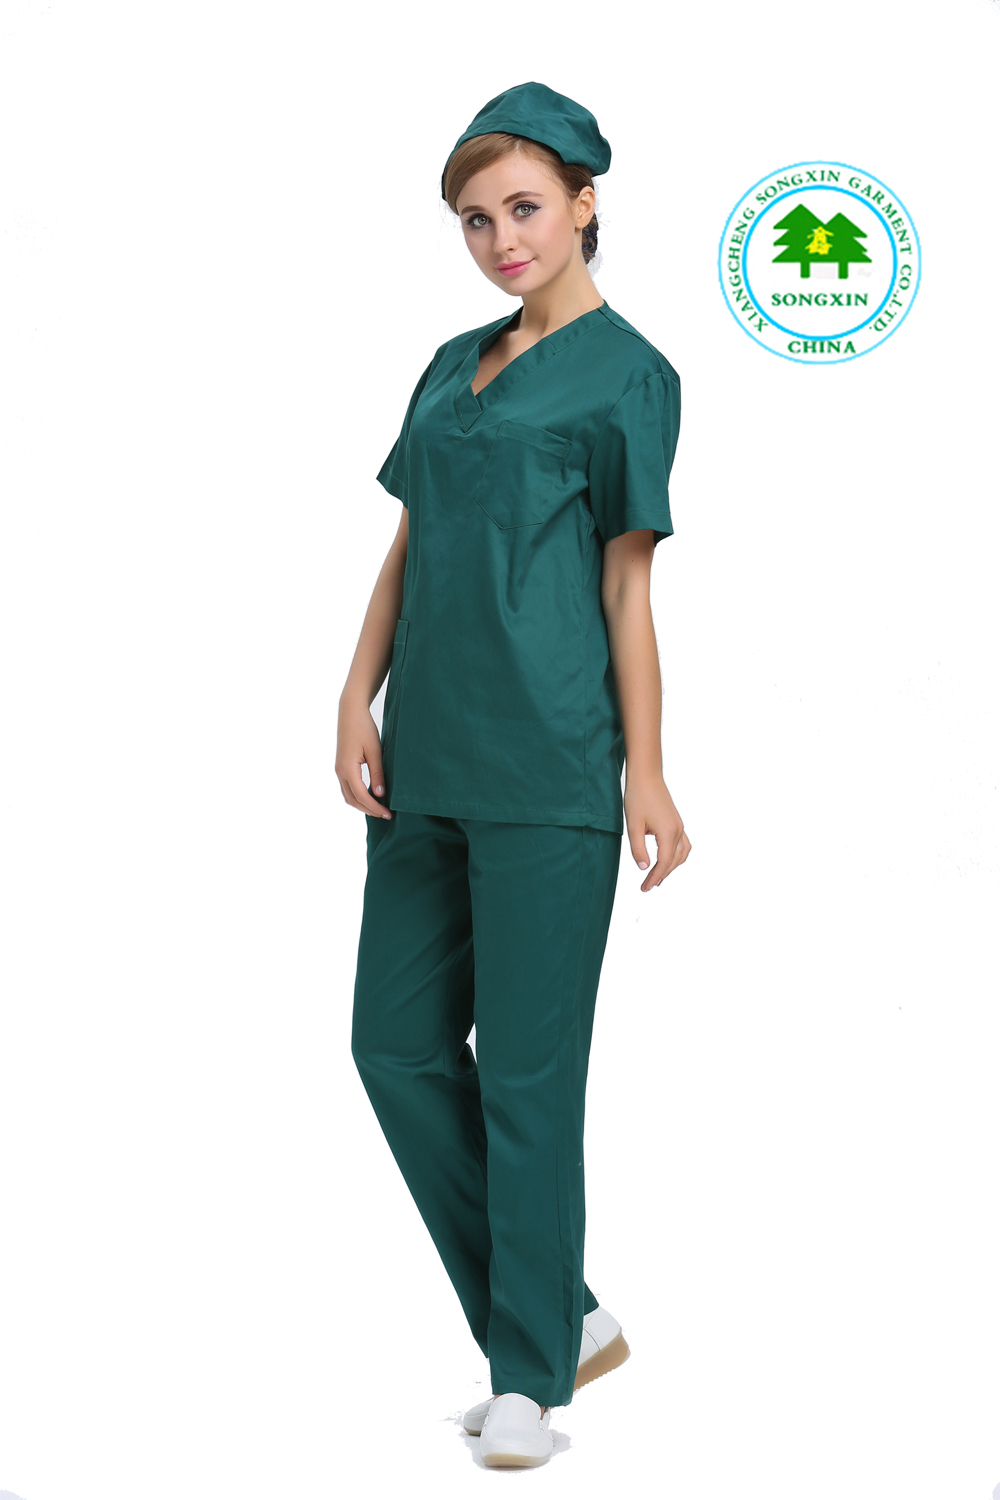 00eec17b4c8 Free Shipping OEM surgical clothing dark green doctor suit hospital  workwear physician service uniforme medico for women-in Scrub Sets from  Novelty ...